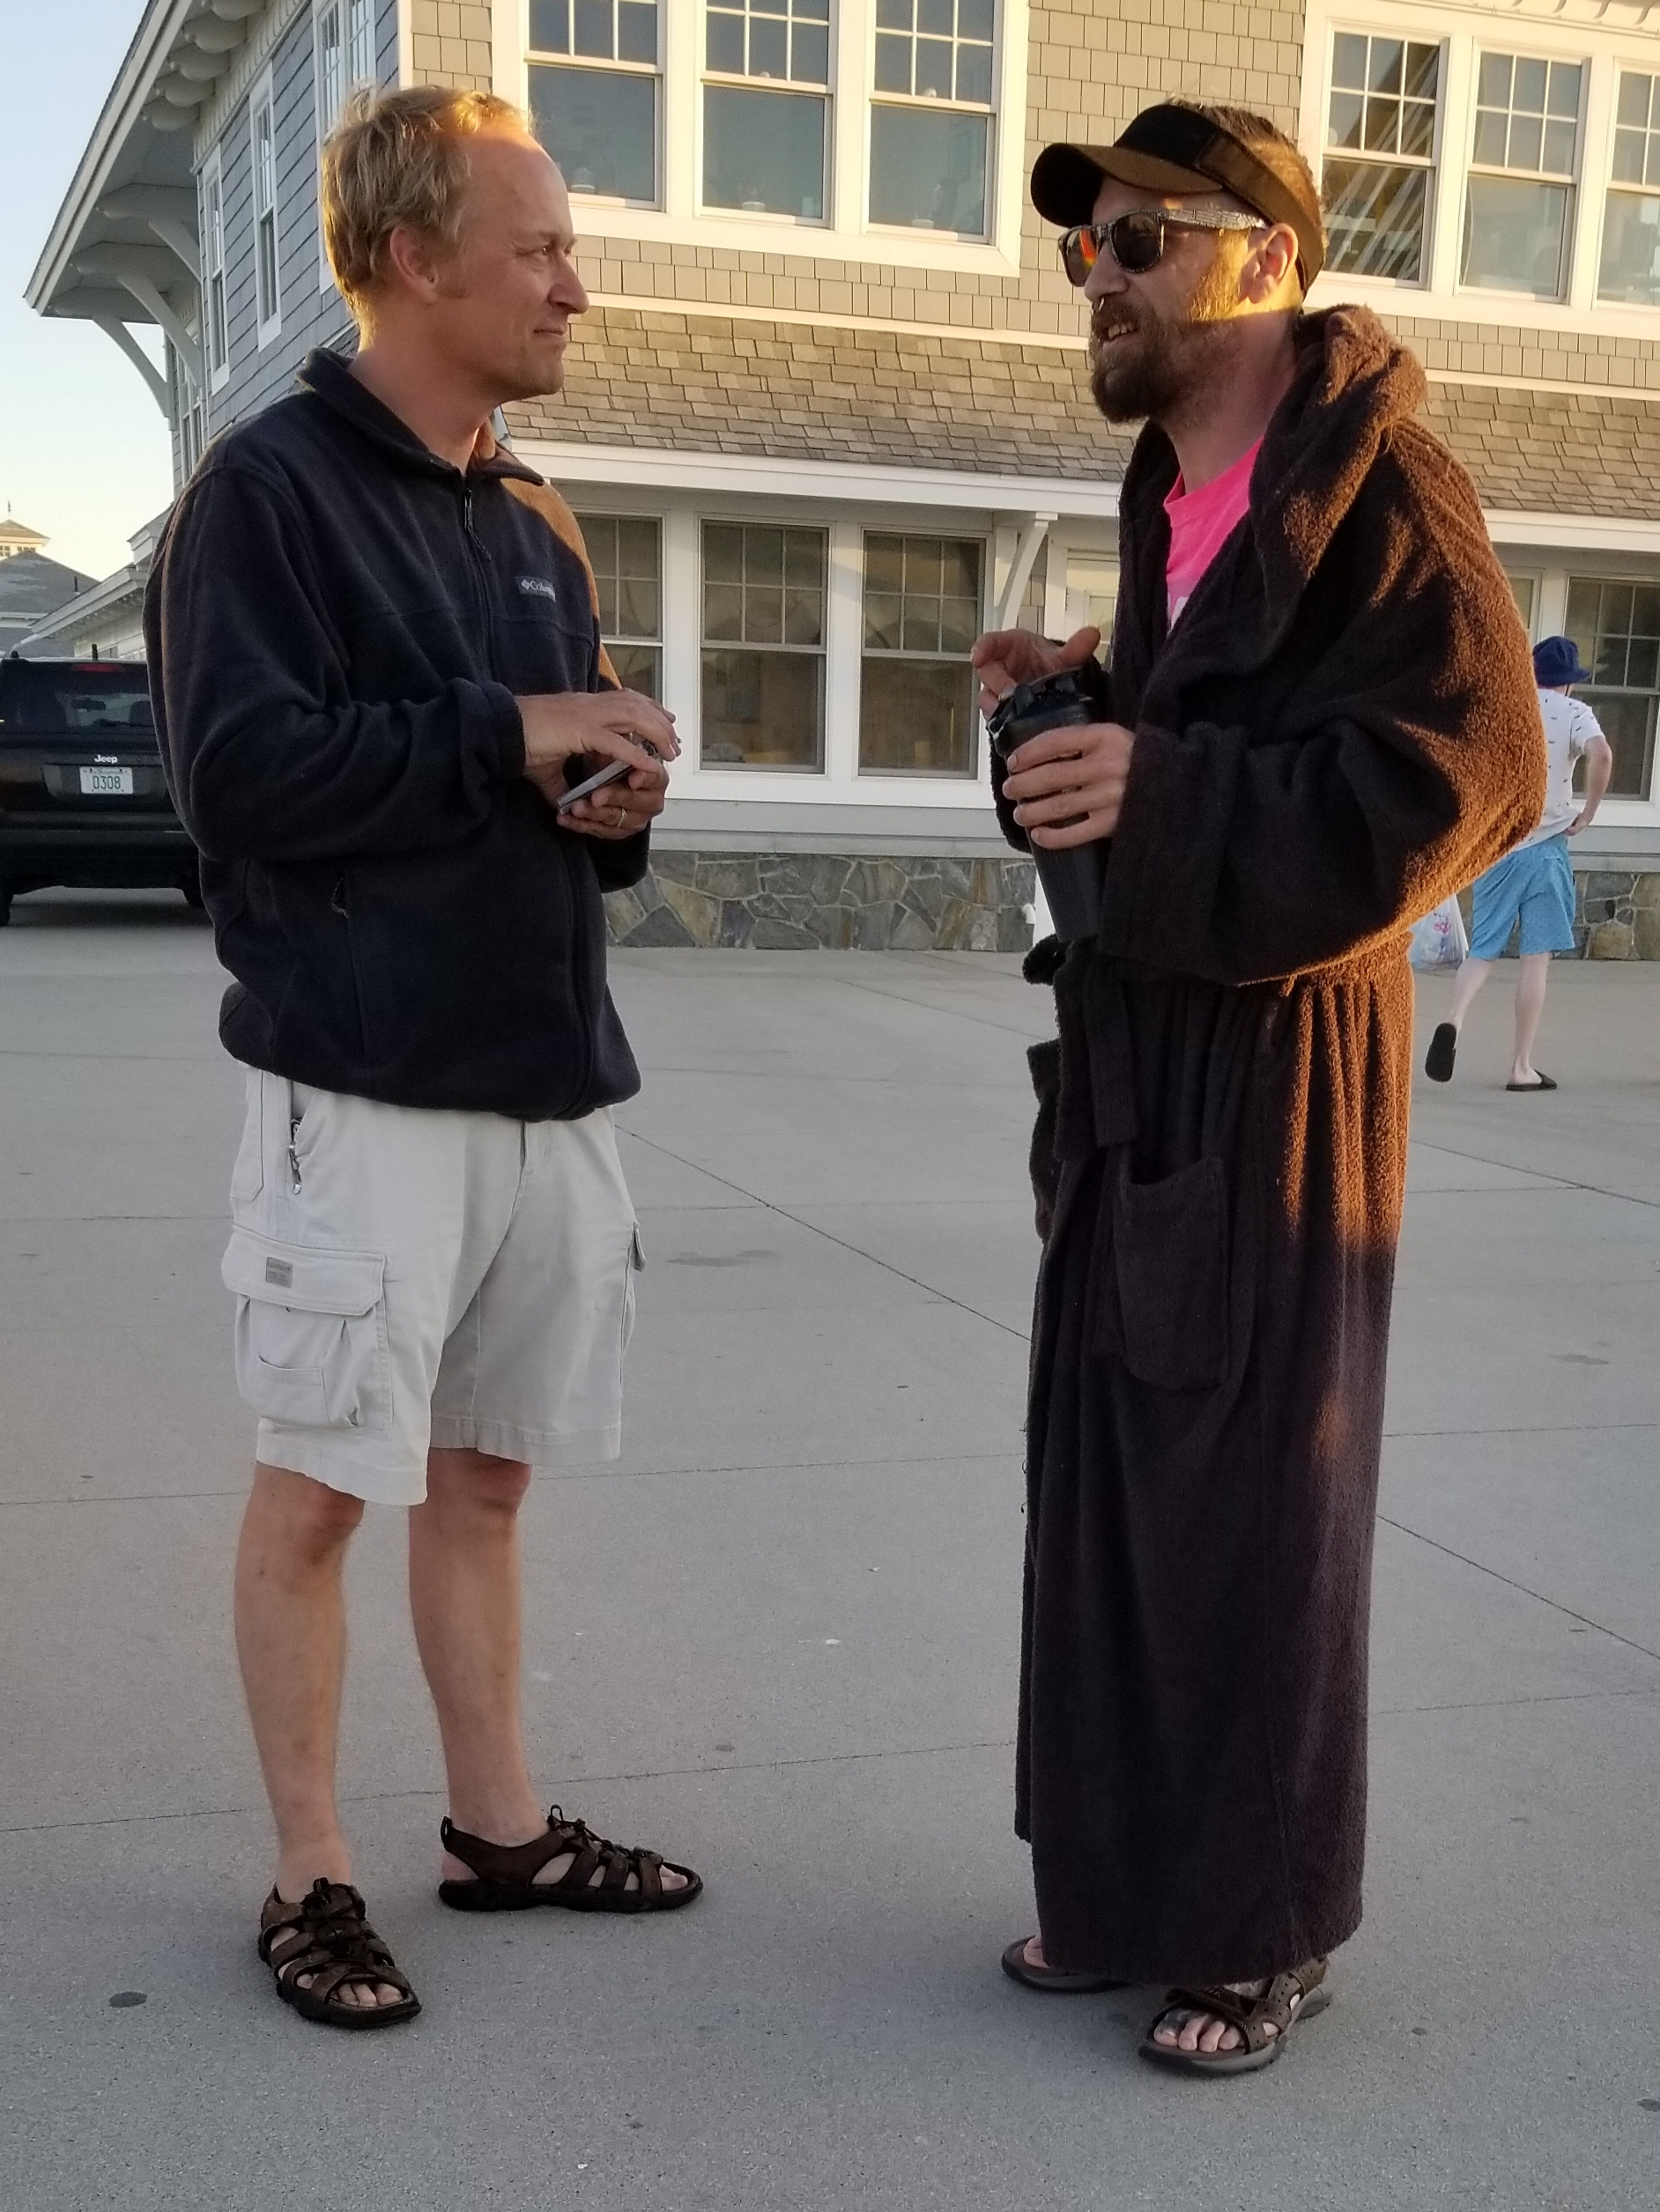 God seems to send the strangest people to Chris - it happens all the time! This unique man believes in aliens but not Jesus. Chris was able to share the Gospel quickly, but sadly he wanted to leave when the Gospel came up.